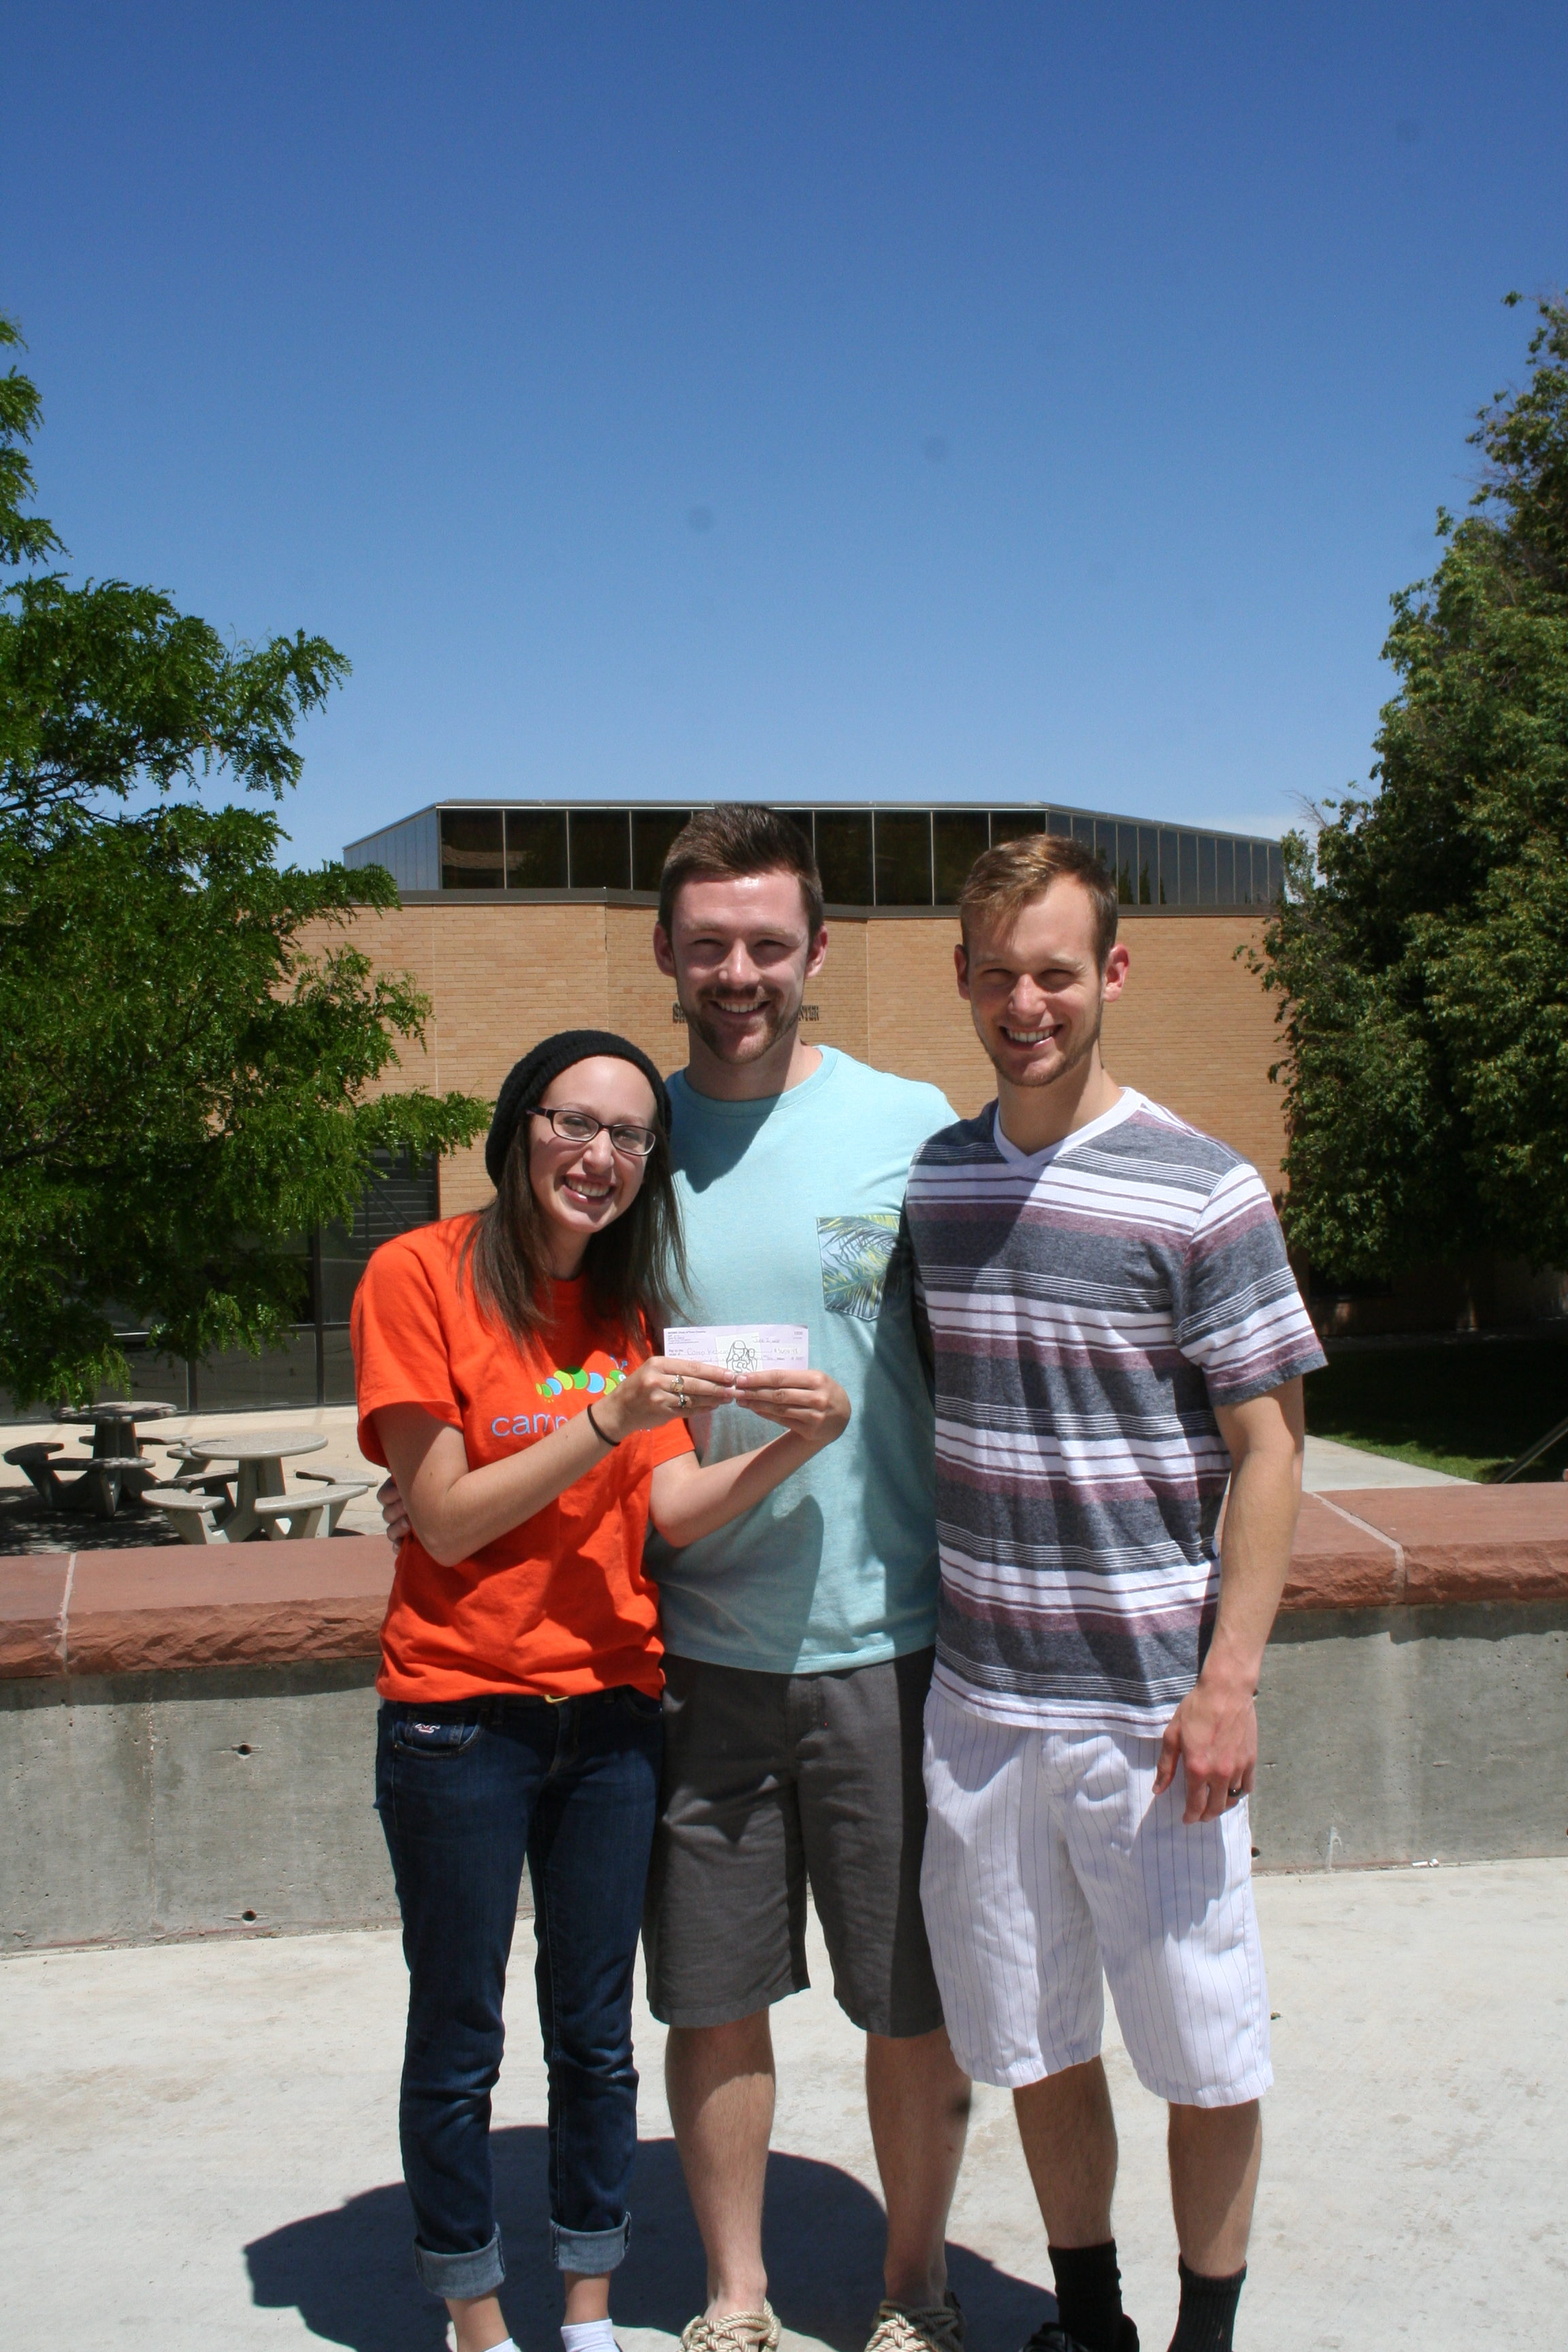 SUU students, who serve as Camp Kesem counselors, accept a check from the Moms Club Pink Tea fundraiser, Cedar City, Utah, June 1, 2016   Photo by Kaleigh Bronson, St. George News